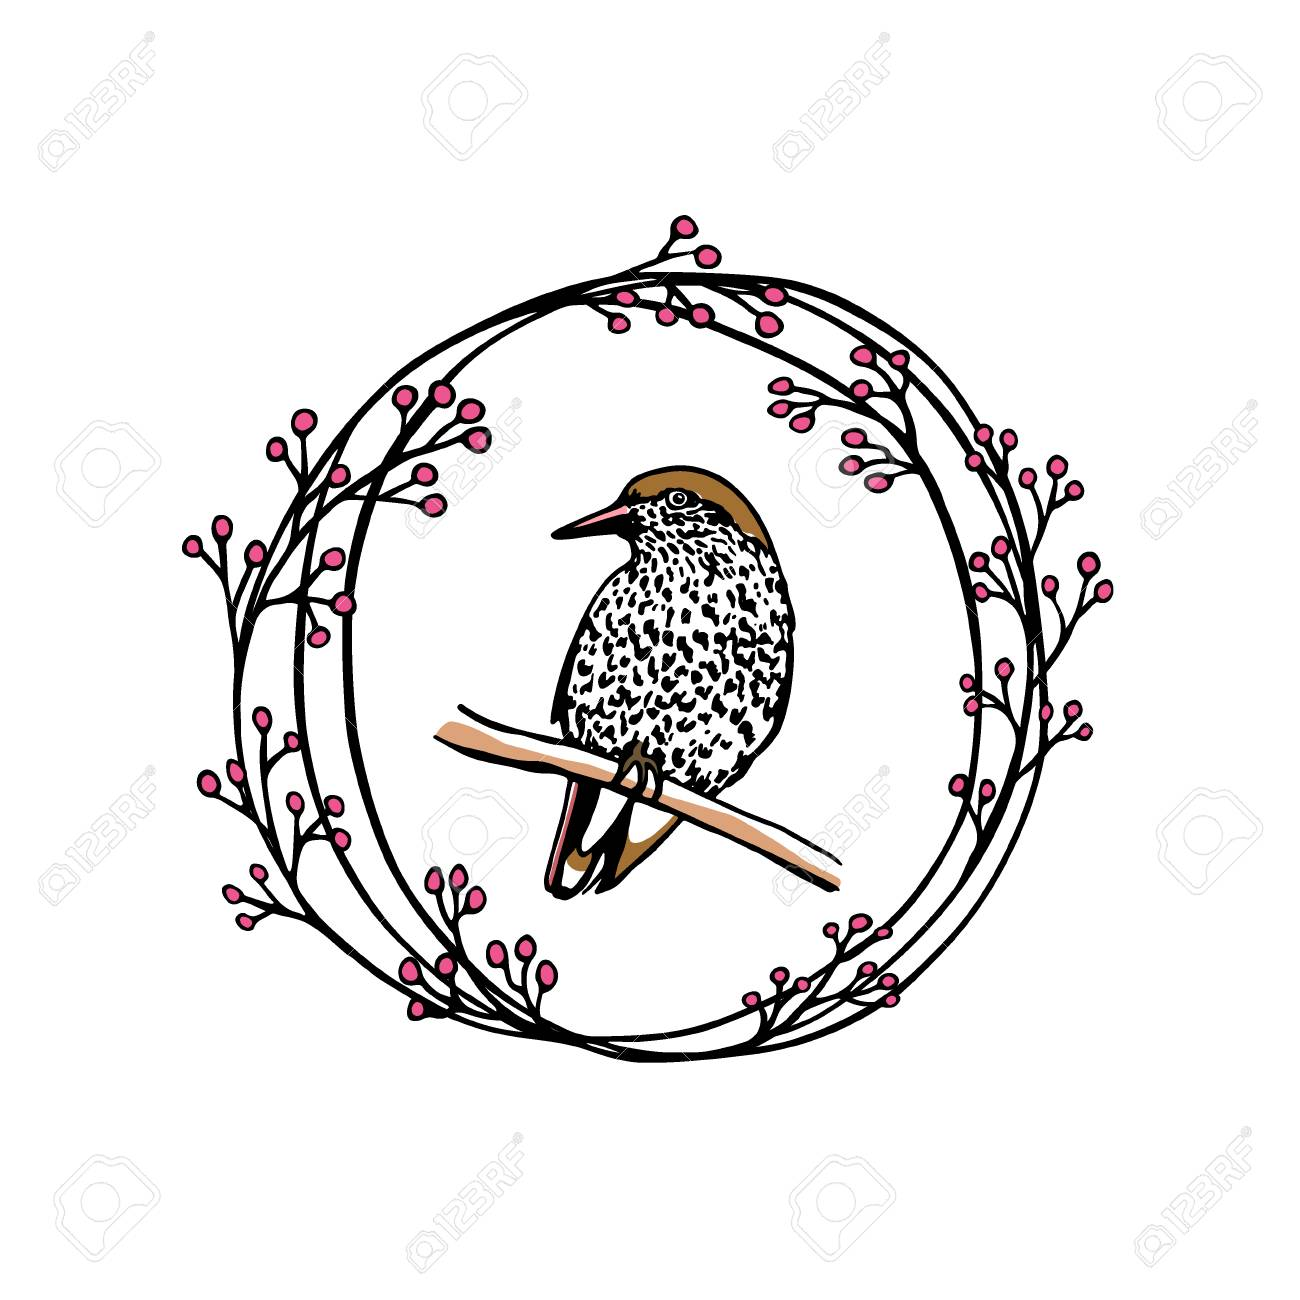 Hand Drawn Floral Wreath With A Small Bird Made In Vector. Beautiful ...